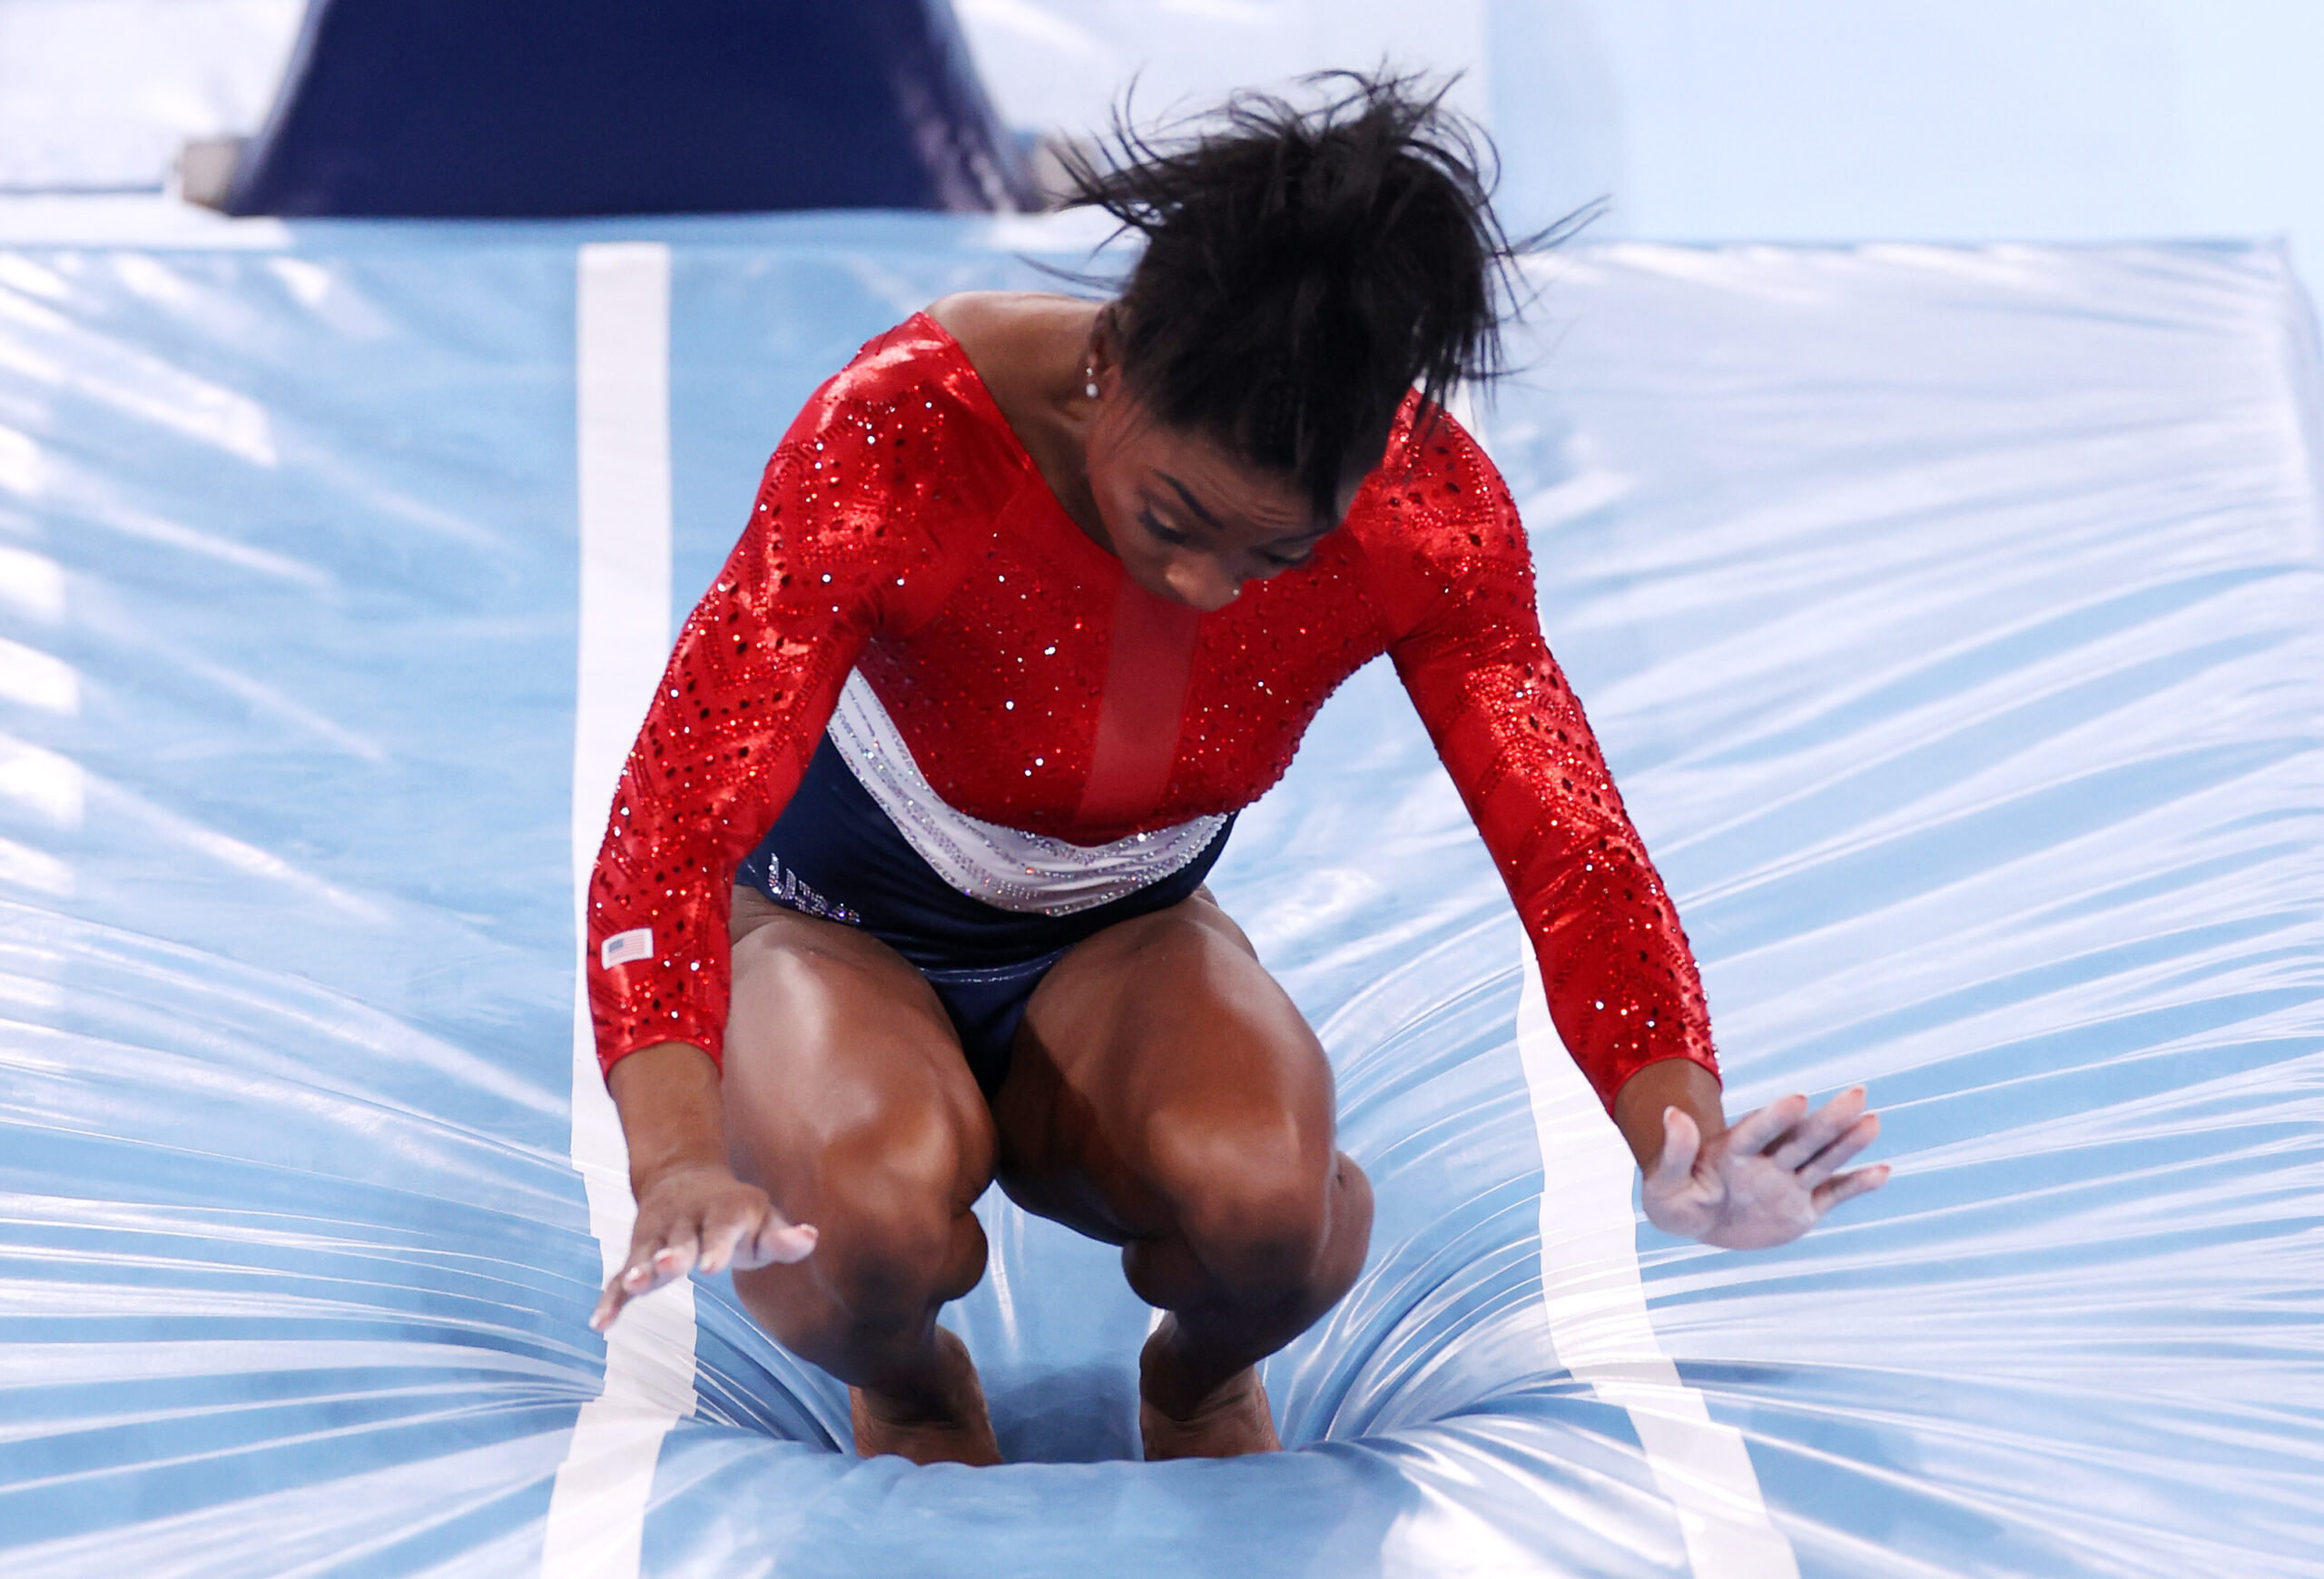 <i>Jamie Squire/Getty Images</i><br/>Simone Biles of Team United States stumbles upon landing after competing in vault during the women's team final on day four of the Tokyo 2020 Olympic Games at Ariake Gymnastics Centre.